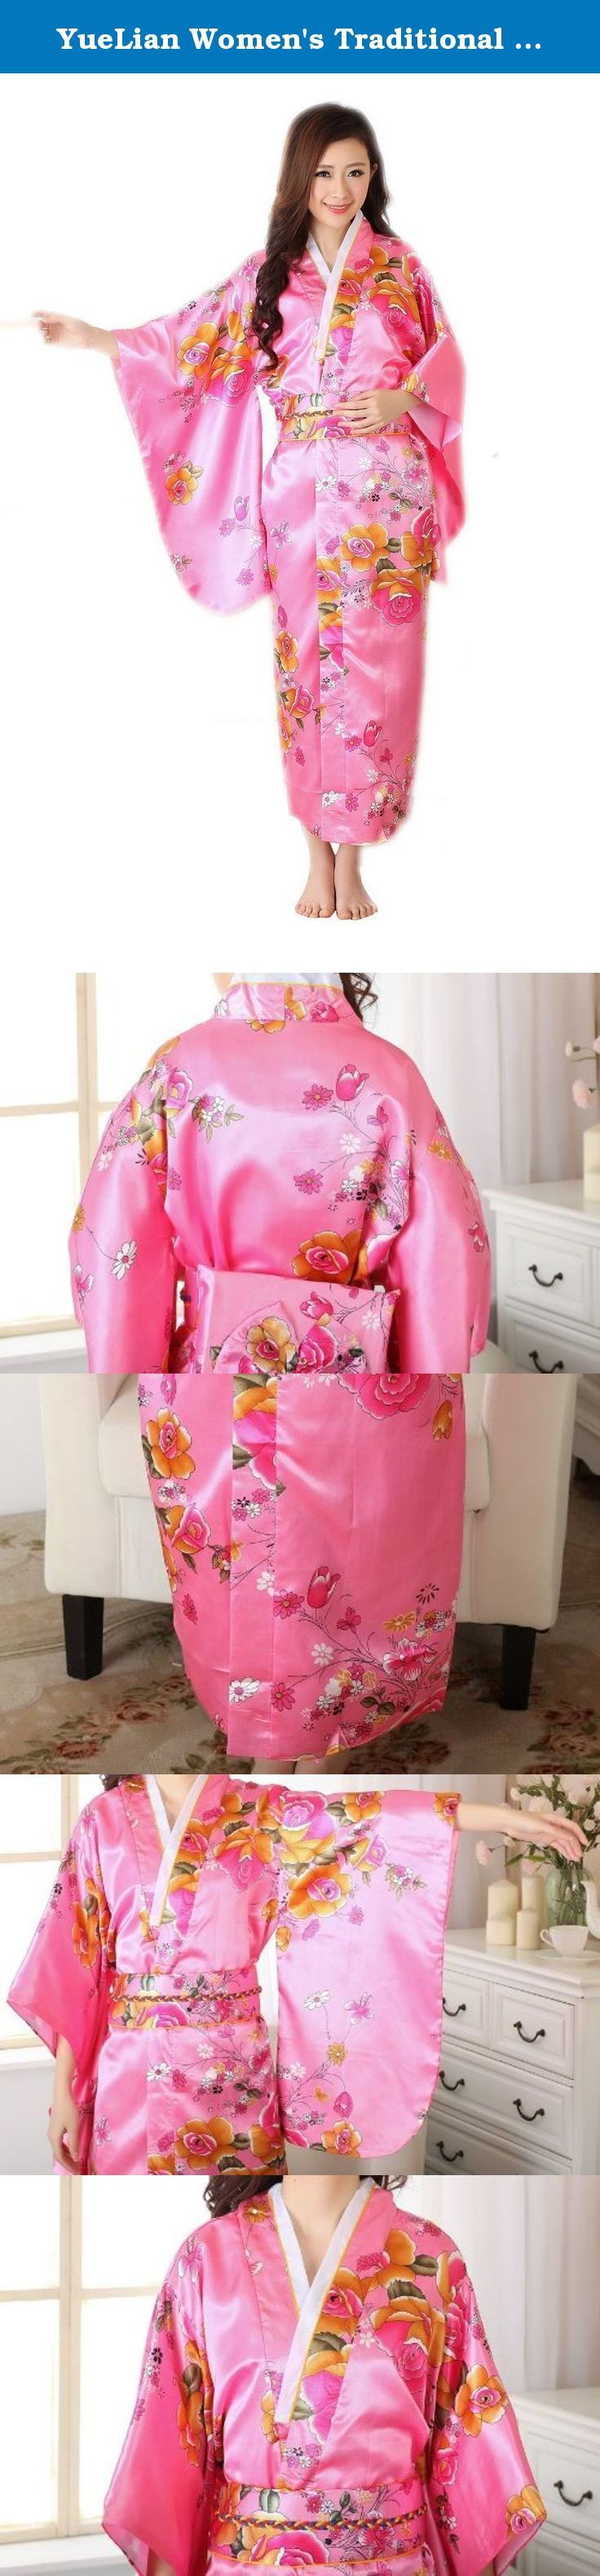 YueLian Women's Traditional Japanese Kimono Bathrobe Yukata Kimono Dress (Pink). Material: Brocade Notes: 1. Color: Due to lighting effects, monitor's brightness / contrast settings etc, there could be some slight differences in the color tone of the pictures! 2. Size: Manual measuring, please allow 1-2cm error. .